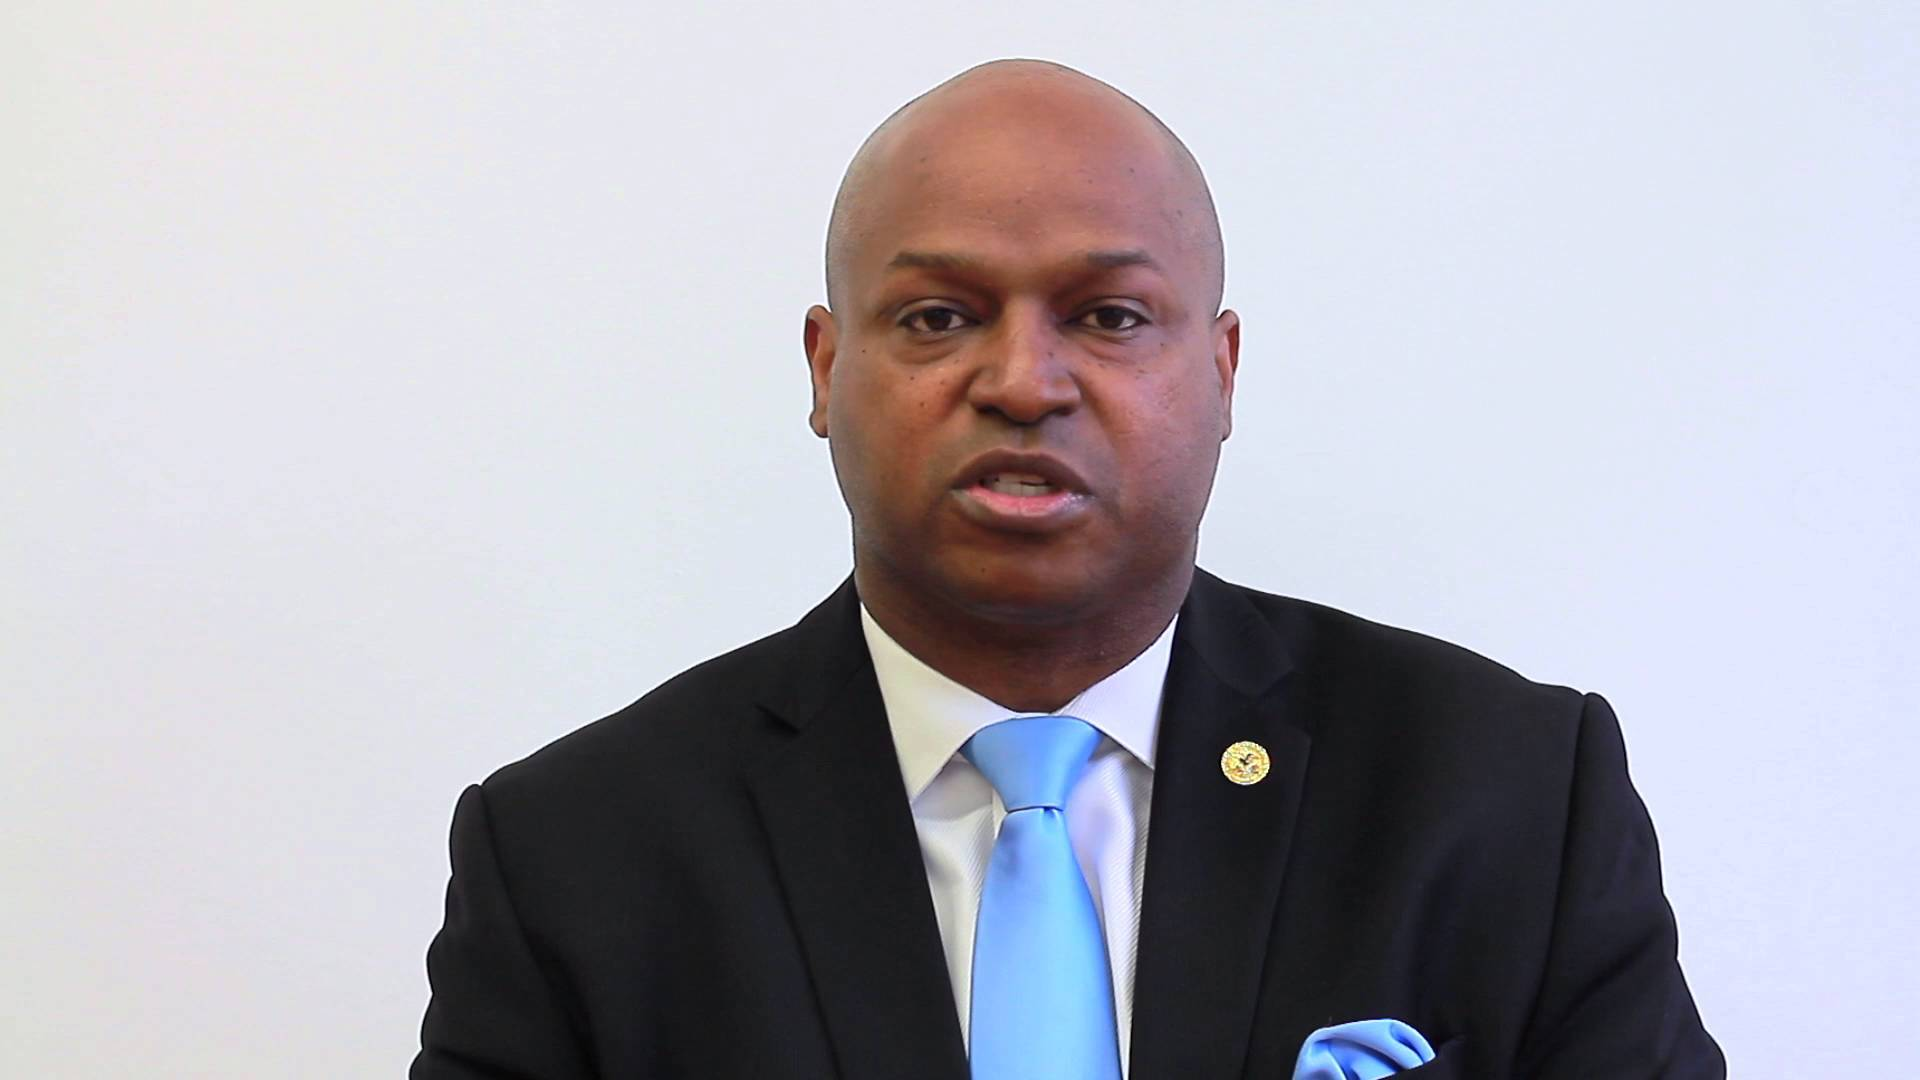 Rep. Chris Welch